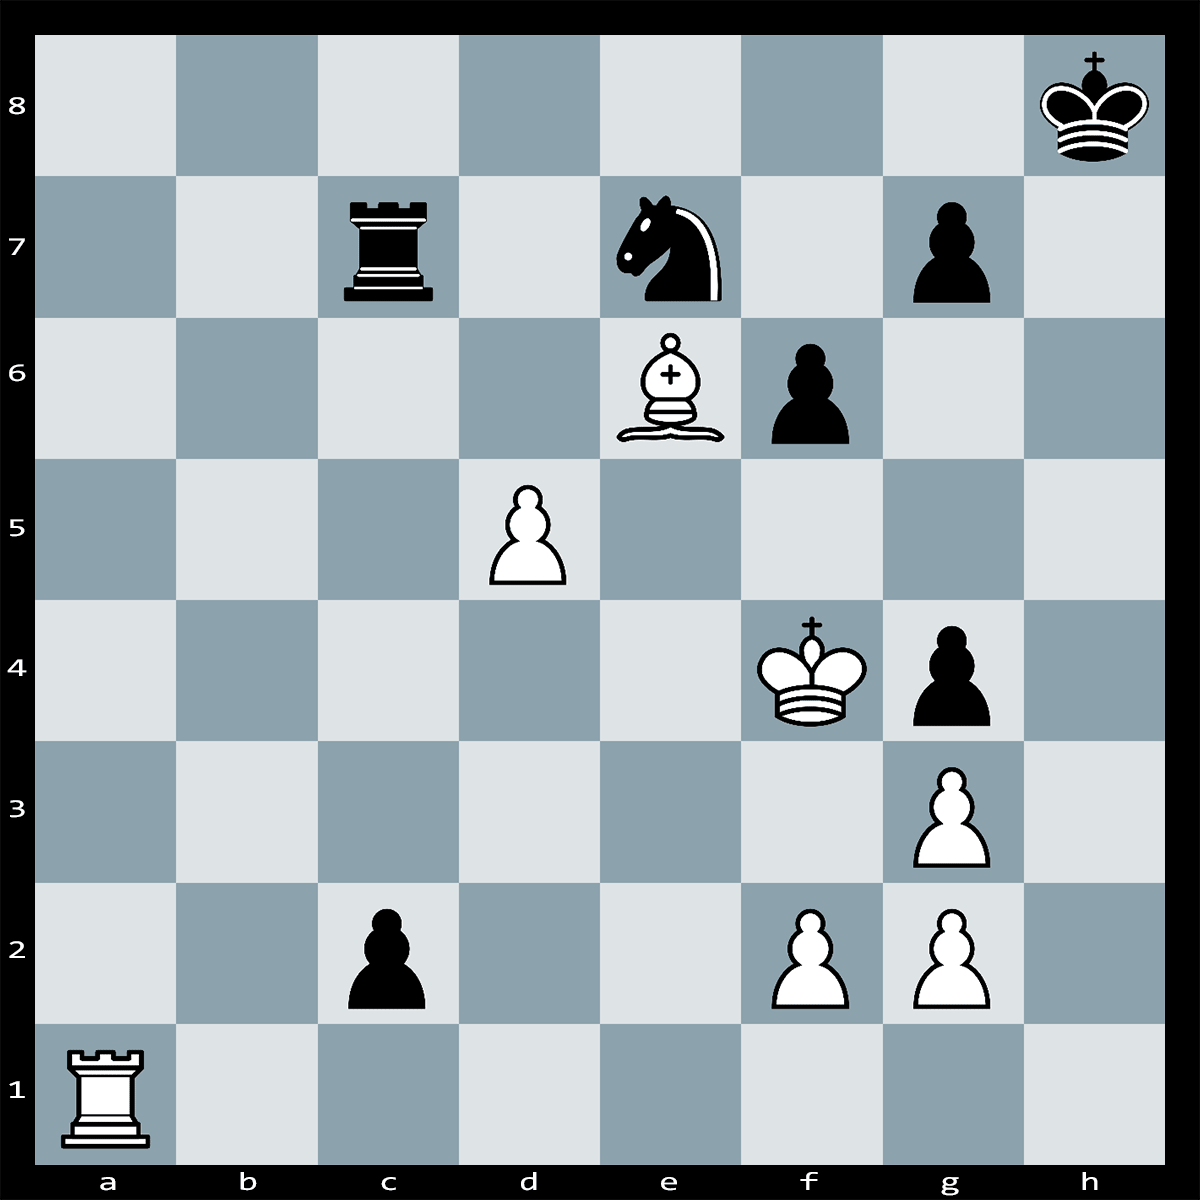 Mate in 1 Move, White to Play | Chess Puzzle #248